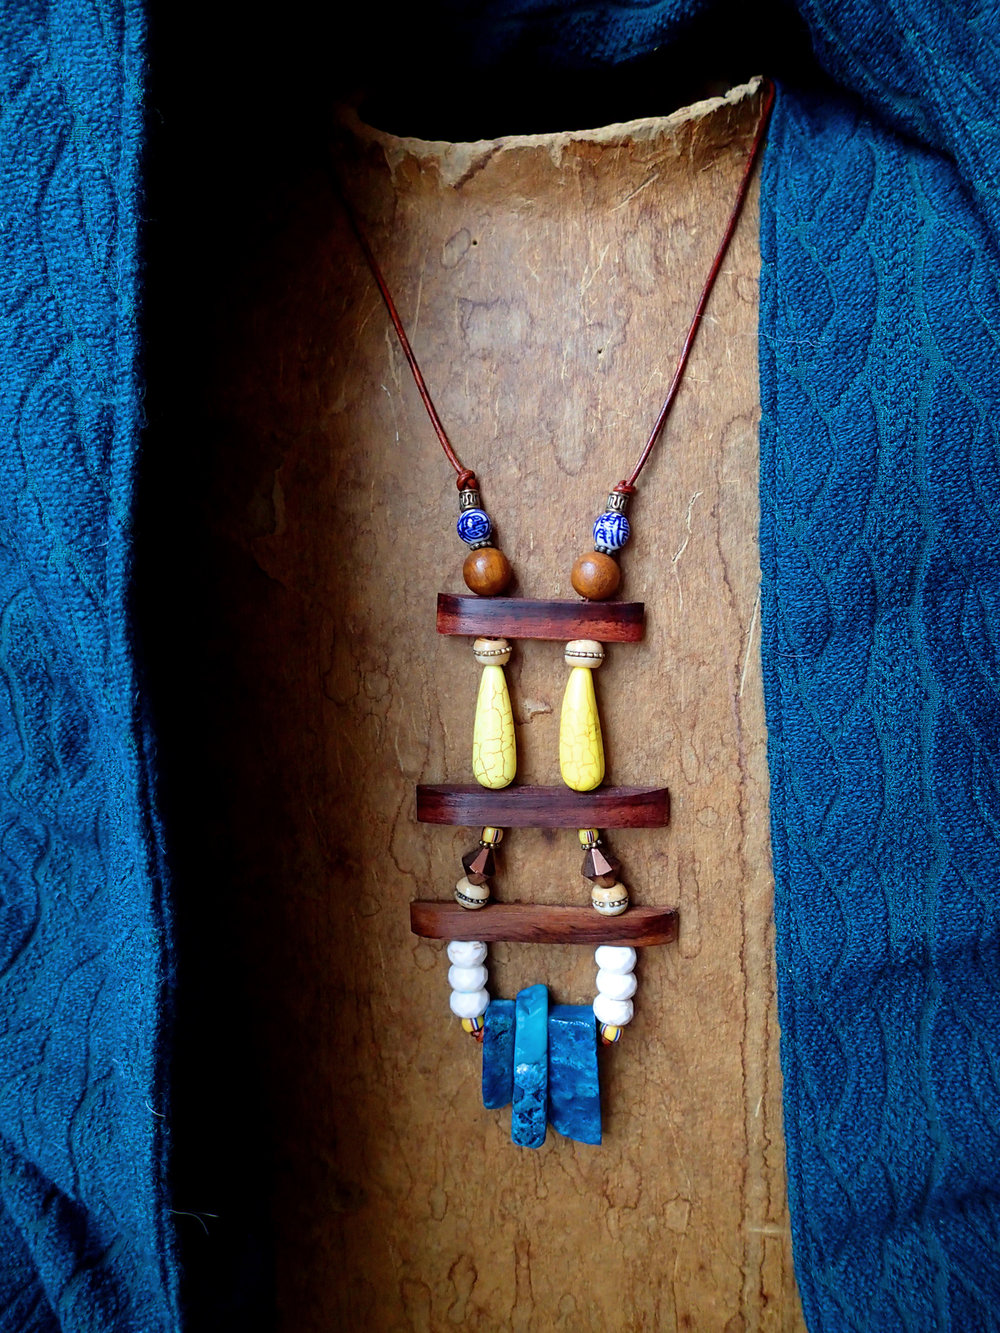 4) $95 stone, organic wood, glass & vintage beads on distressed leather. $4 shipping, arrives in a gift box. email me with questions or for a paypal invoice: cherielester@gmail.com